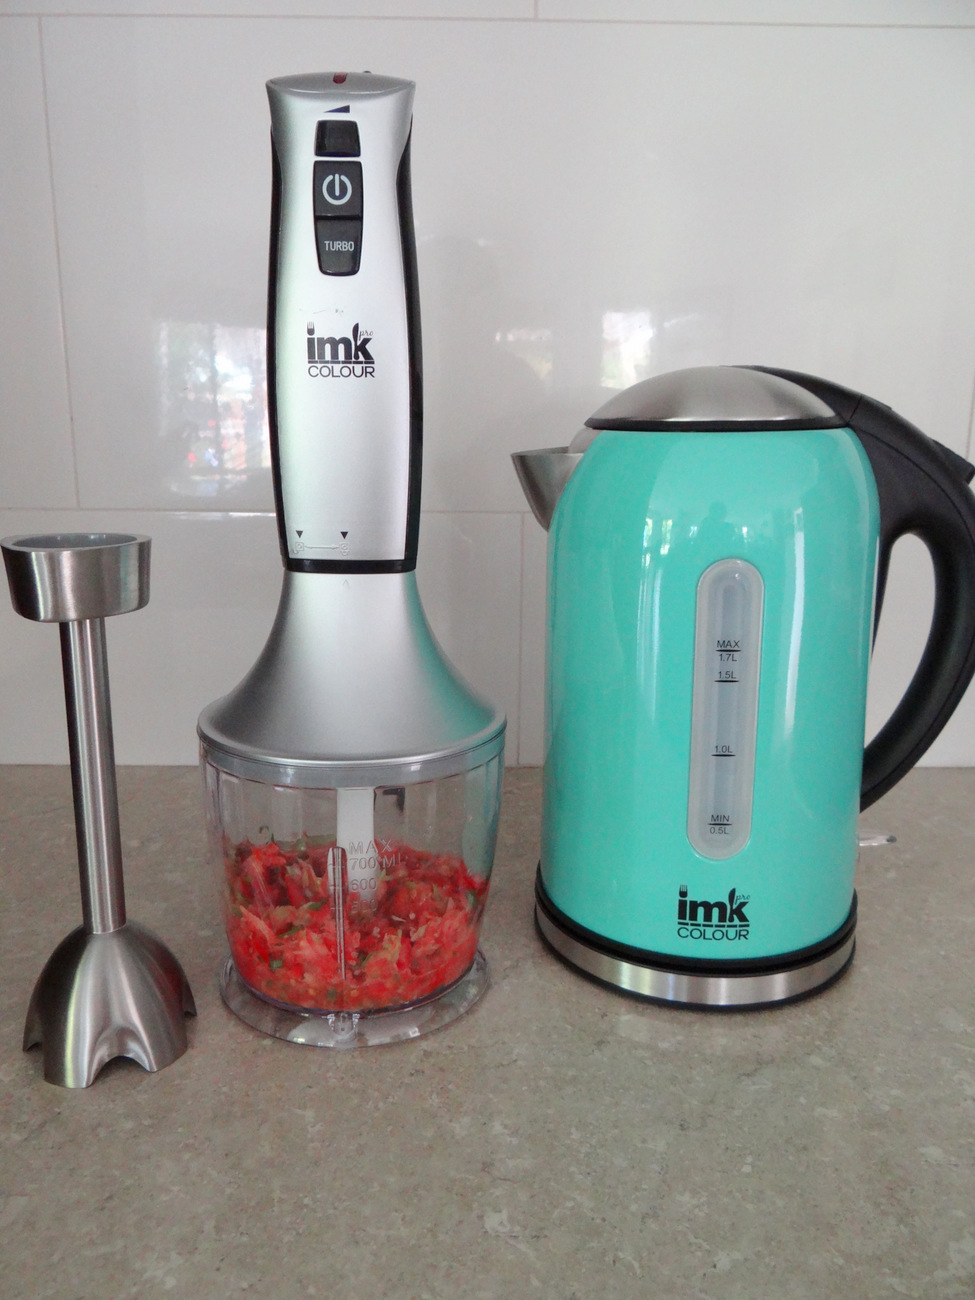 IMK Colour Appliances